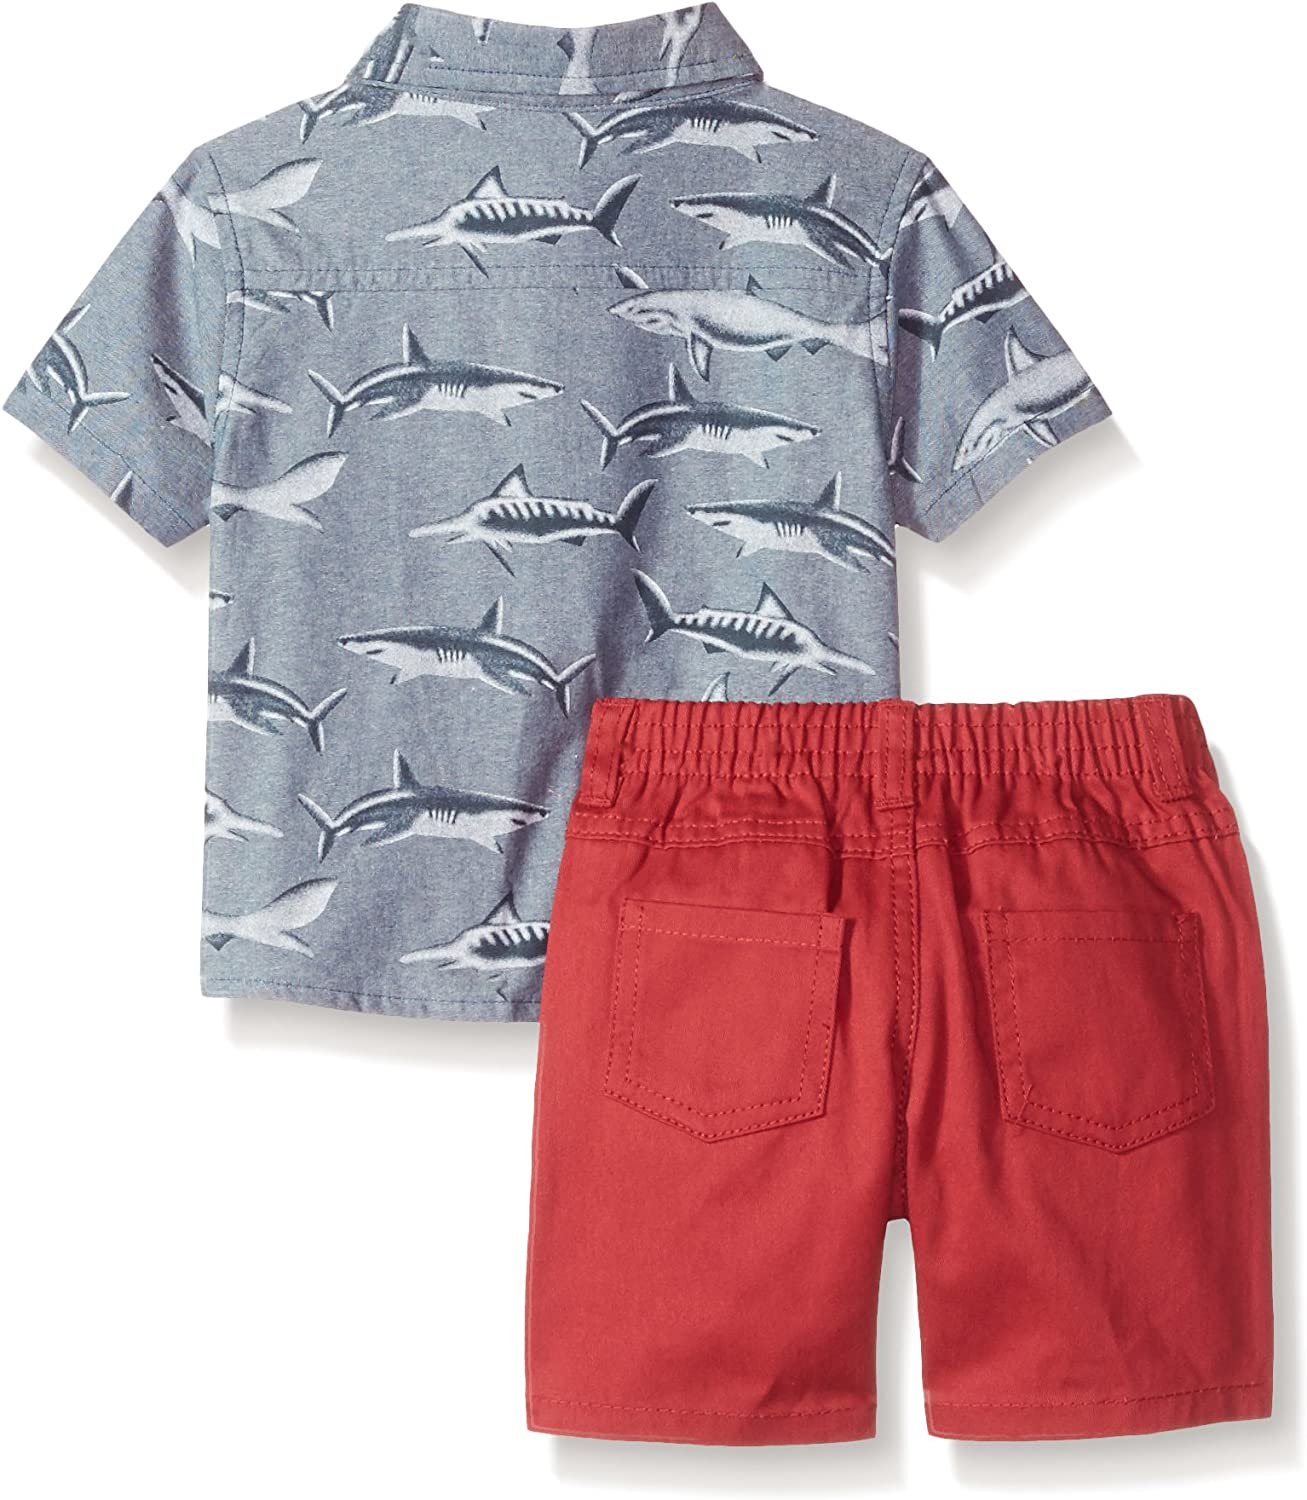 Nannette Baby Boys 3 Piece Set with A Button Down Shirt Tee and Short